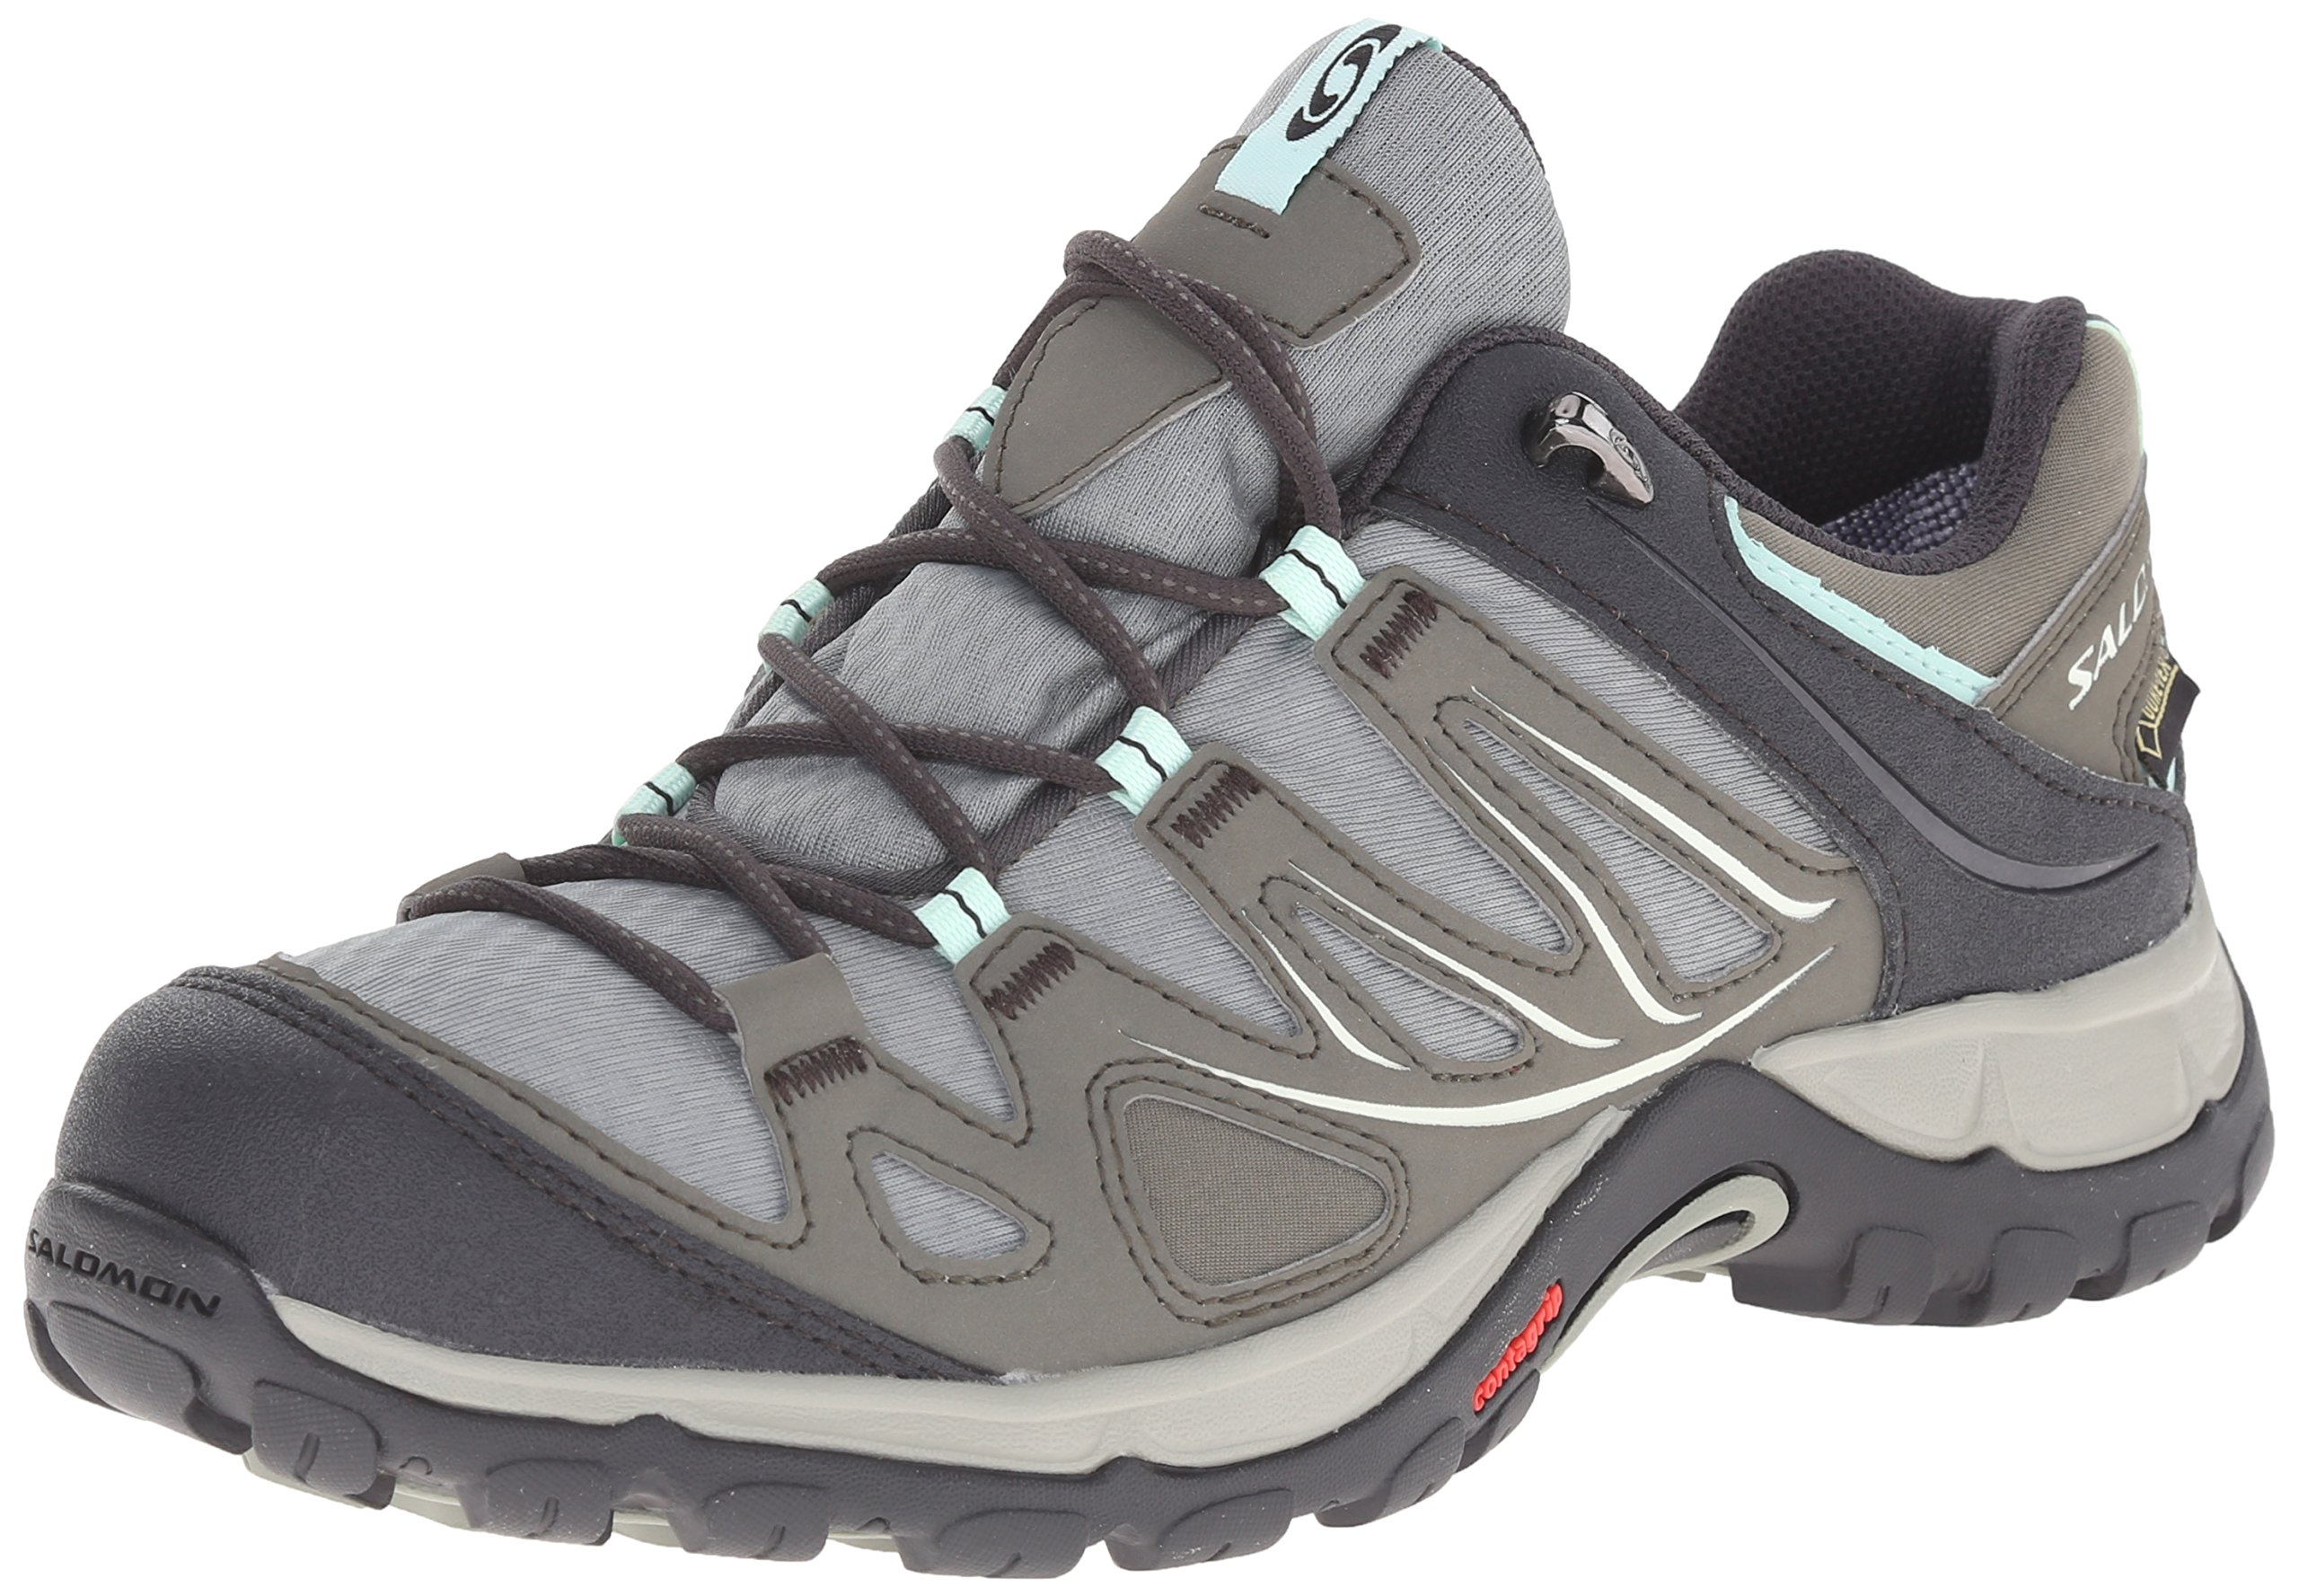 Salomon Women's Ellipse GTX W Hiking Shoe, Verdi Grey, 9.5 B US